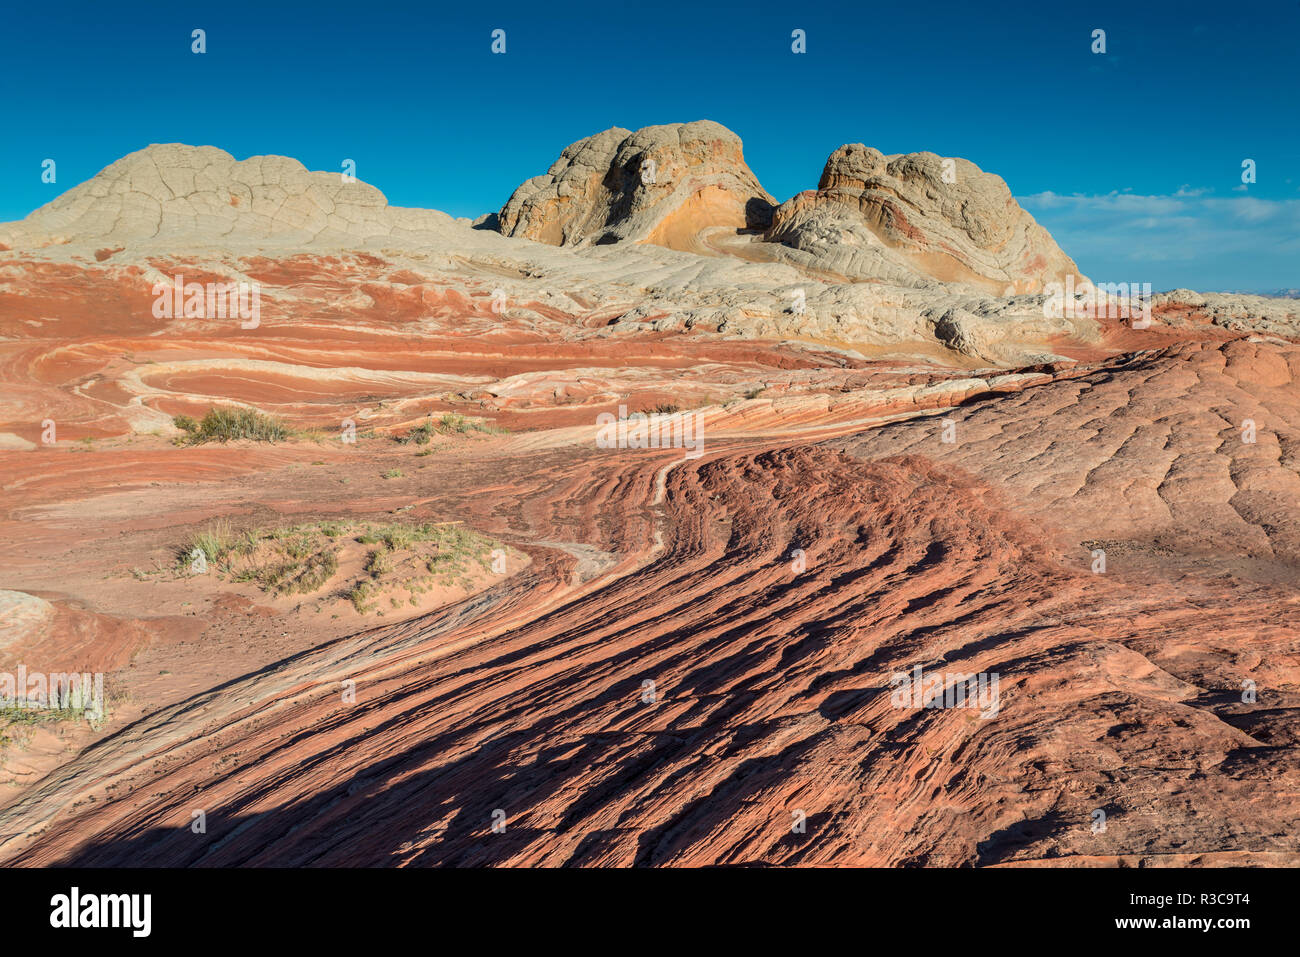 Sandstone Landscape, Vermillion Cliffs, White Pockets Wilderness, Bureau of Land Management, Arizona - Stock Image